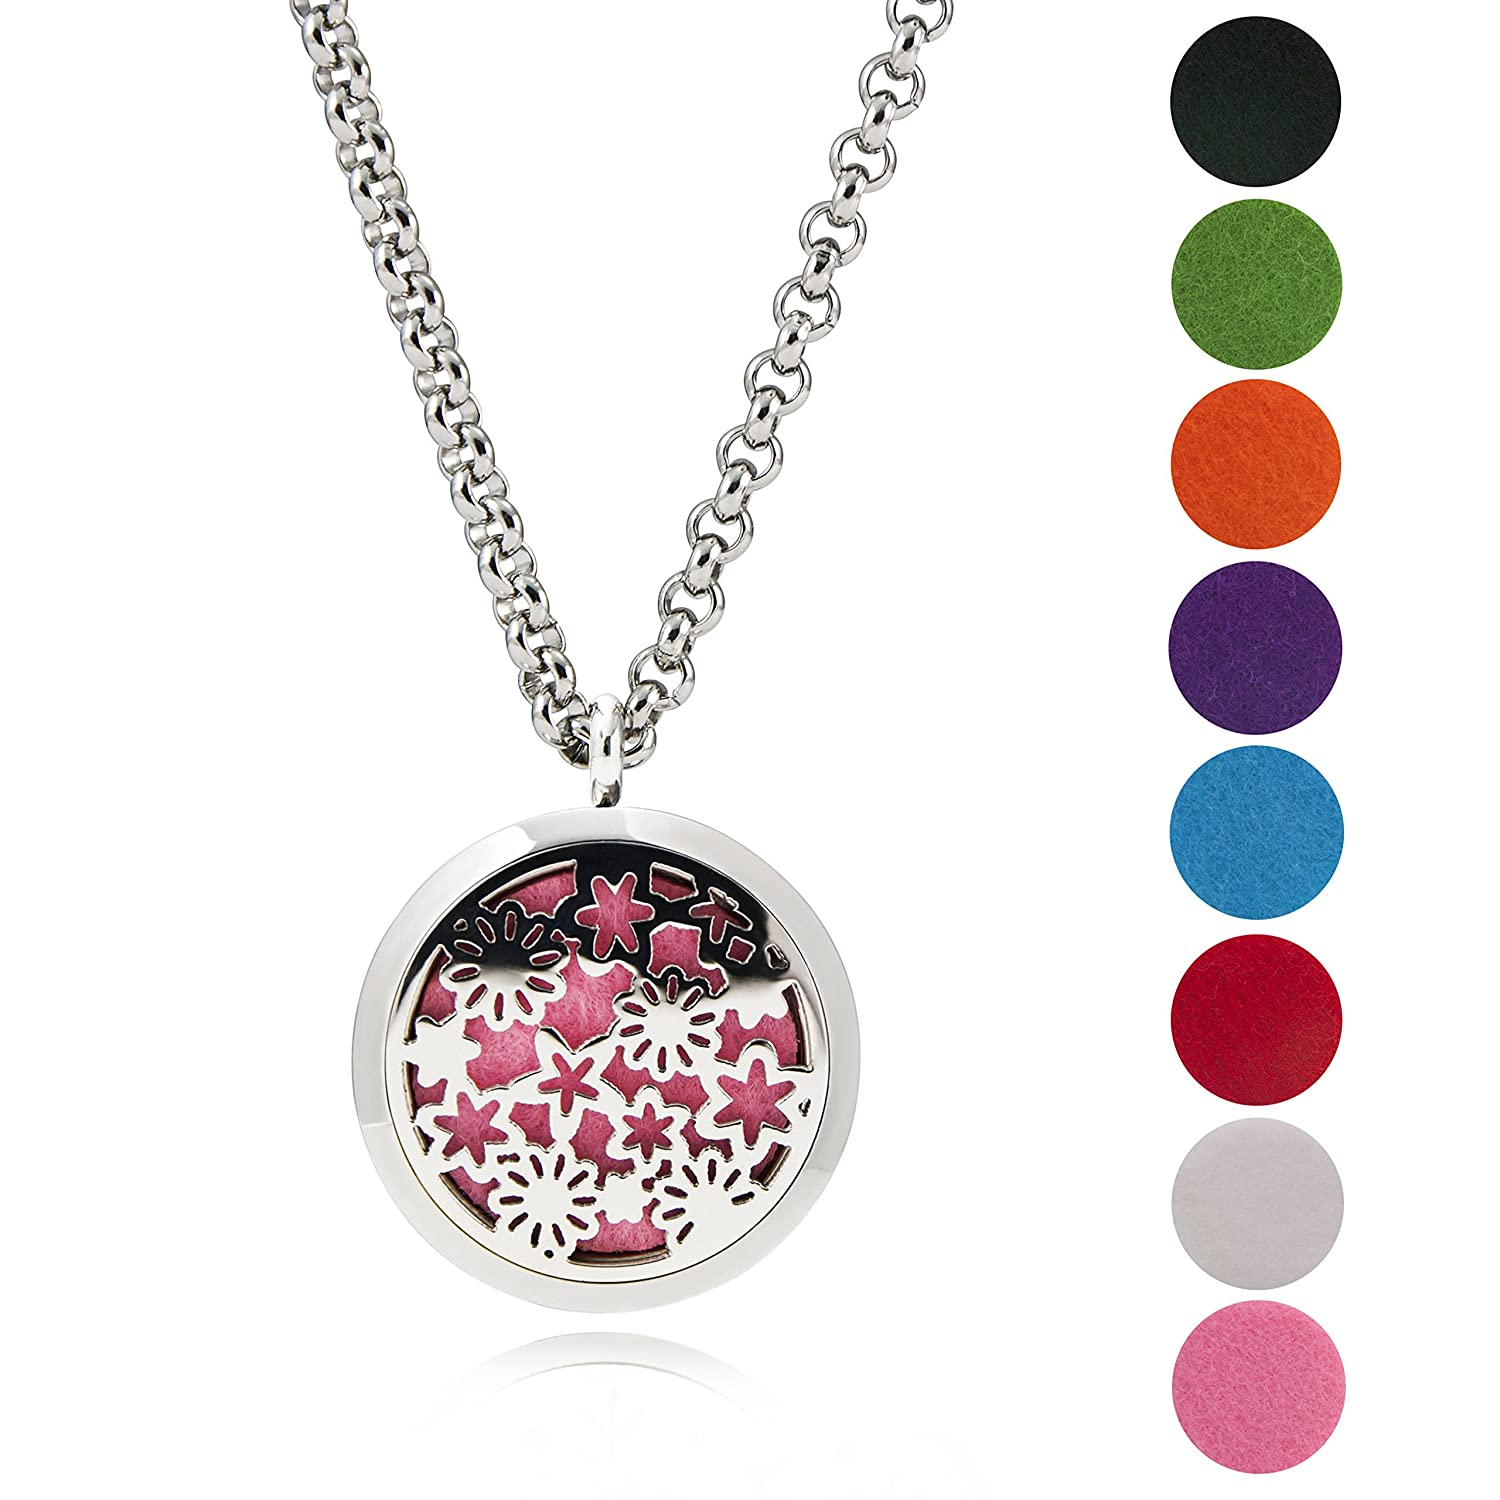 EVERLEAD Stainless Steel Round Essential Oils Diffuser Magnetic Locket/Carving Aromatherapy Necklace Everlead Inc CLP347S3001-C252S4060